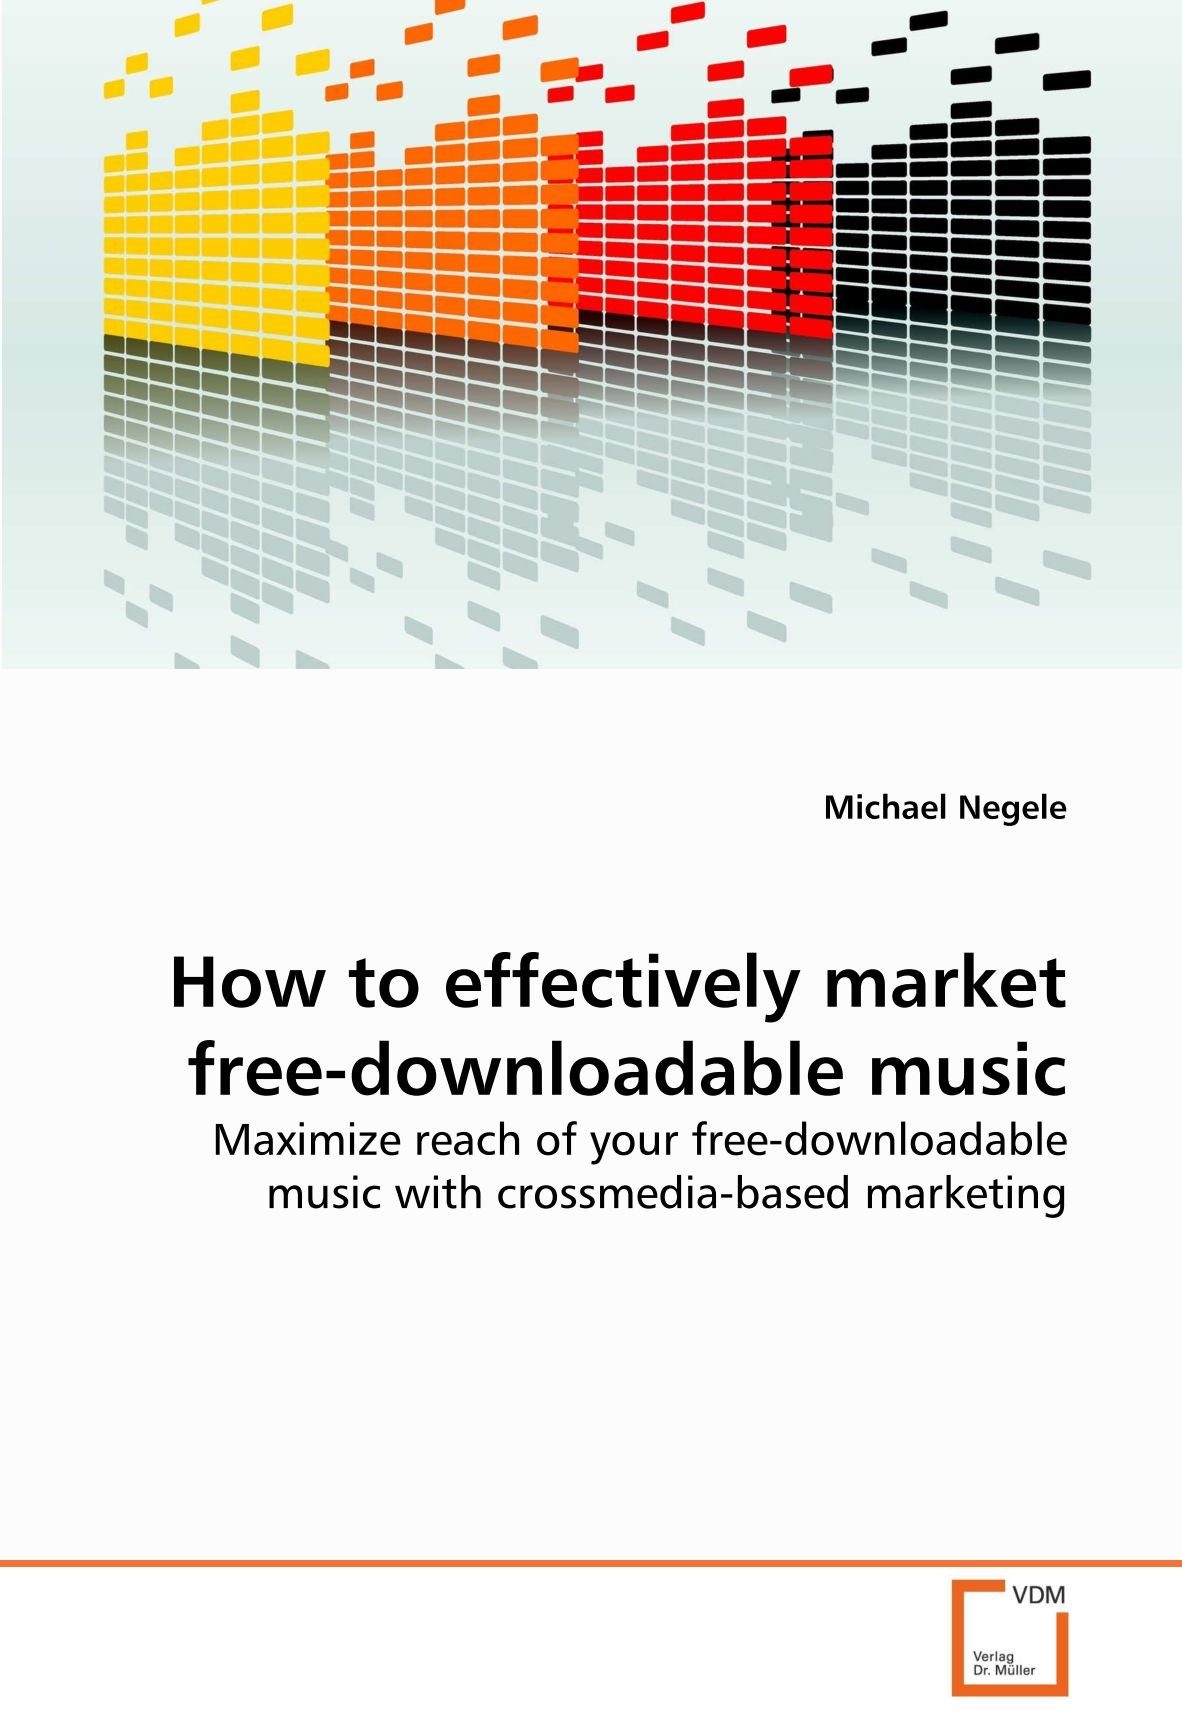 Download How to effectively market free-downloadable music: Maximize reach of your free-downloadable music with crossmedia-based marketing ebook